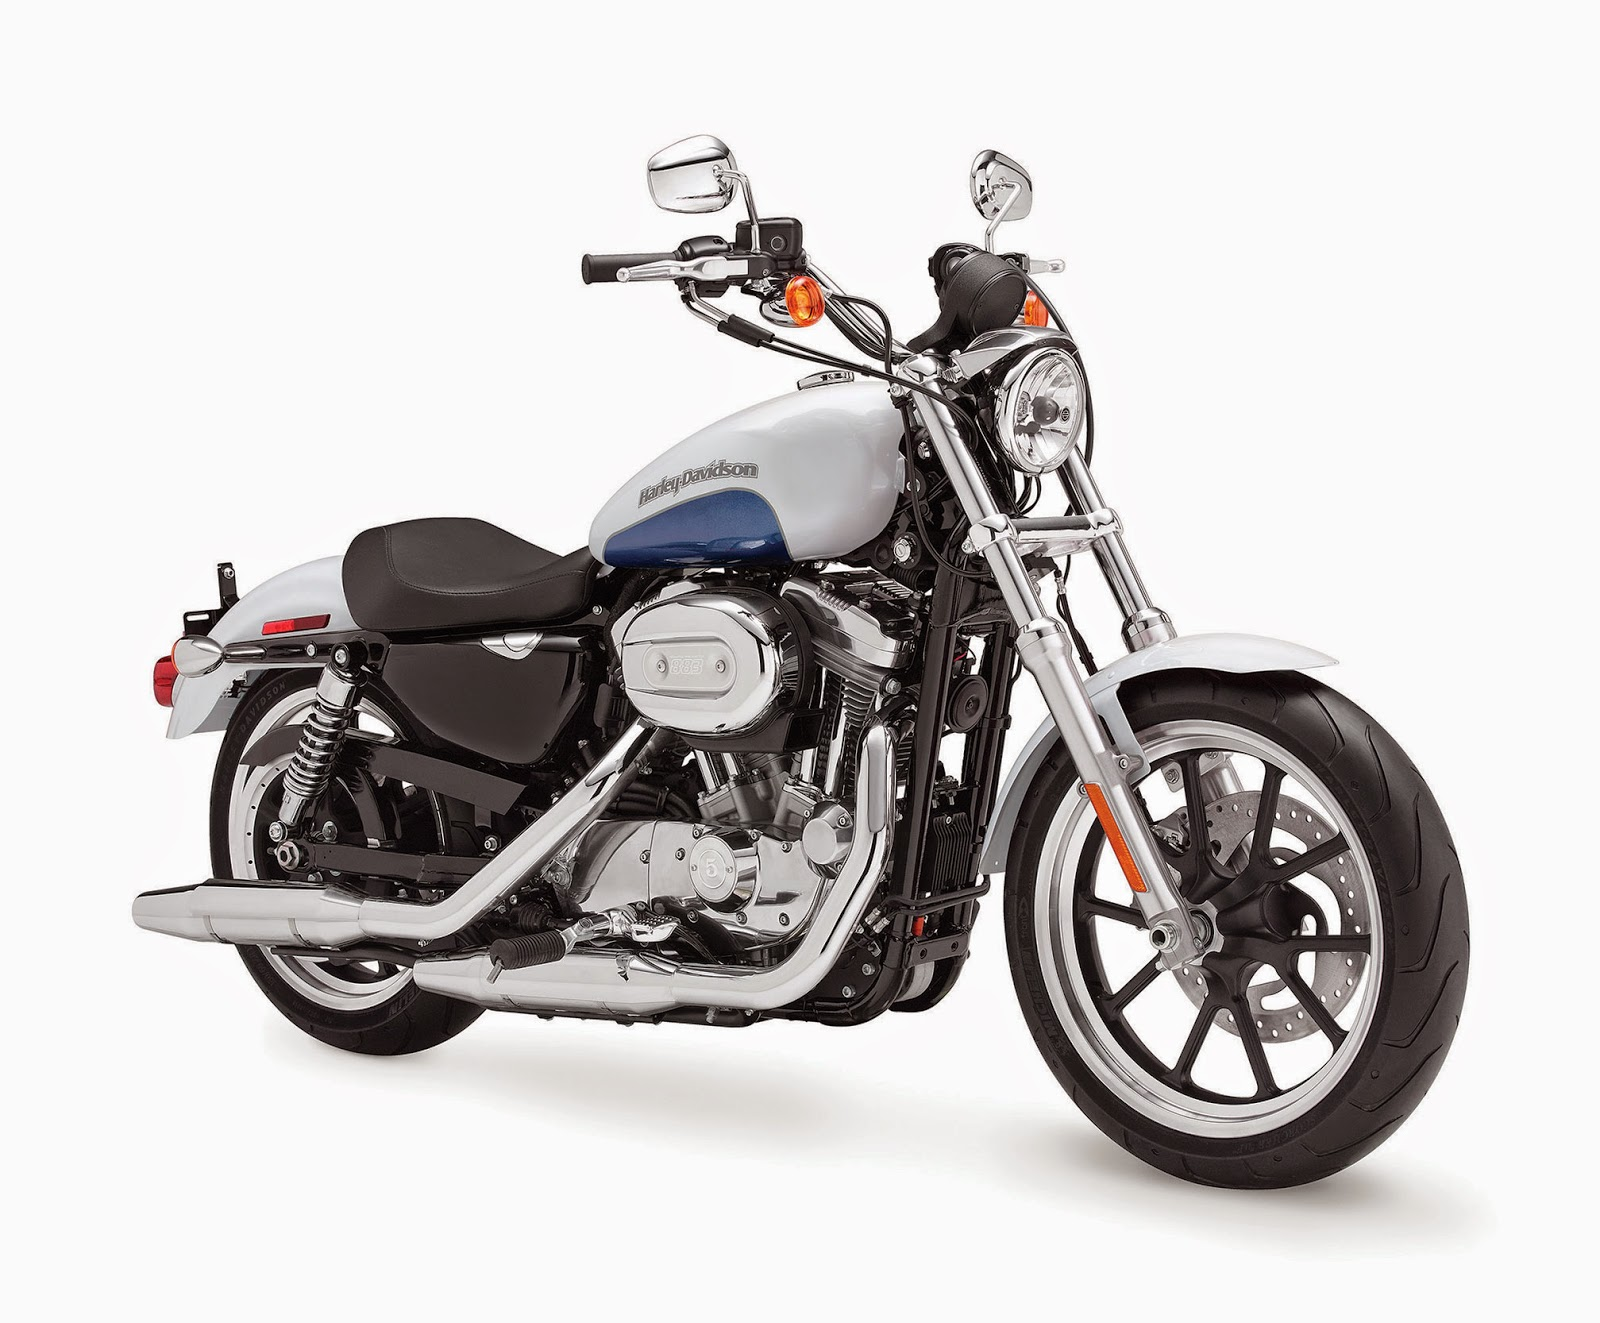 Harley Davidson SuperLow Bike Going To Launch In India In ...